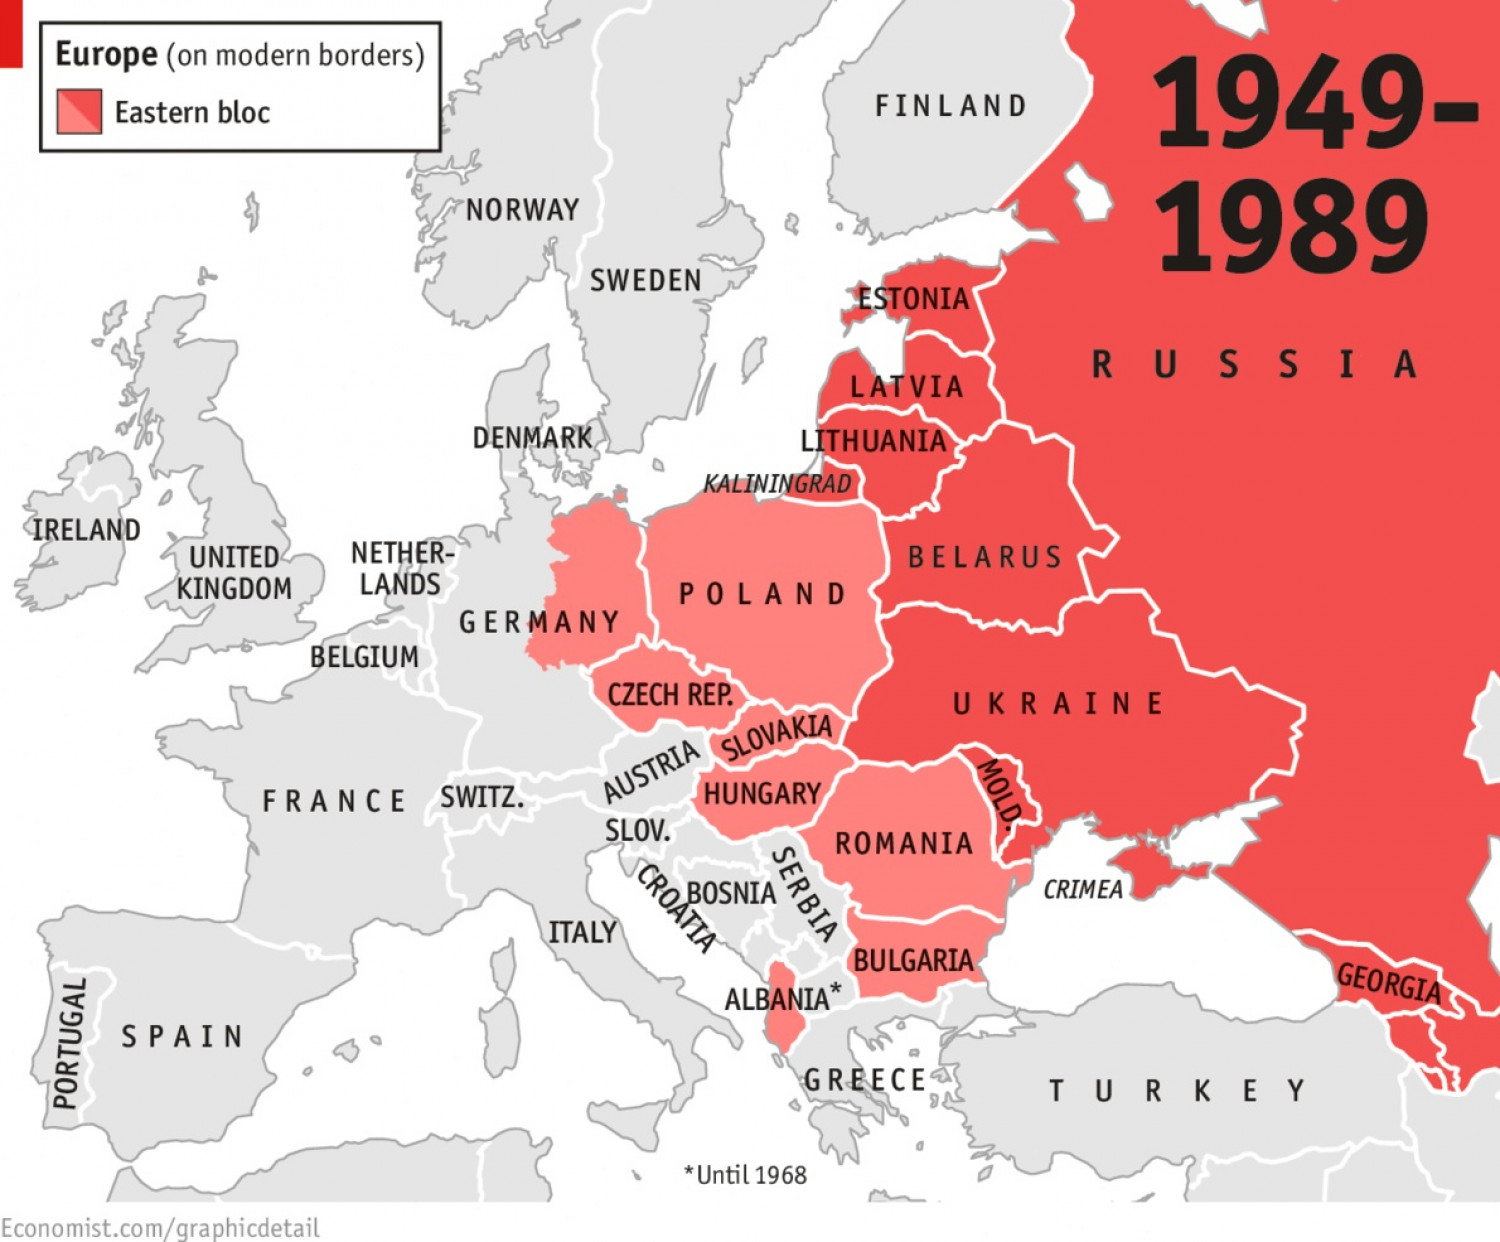 Europe 1949-1989 Infographic